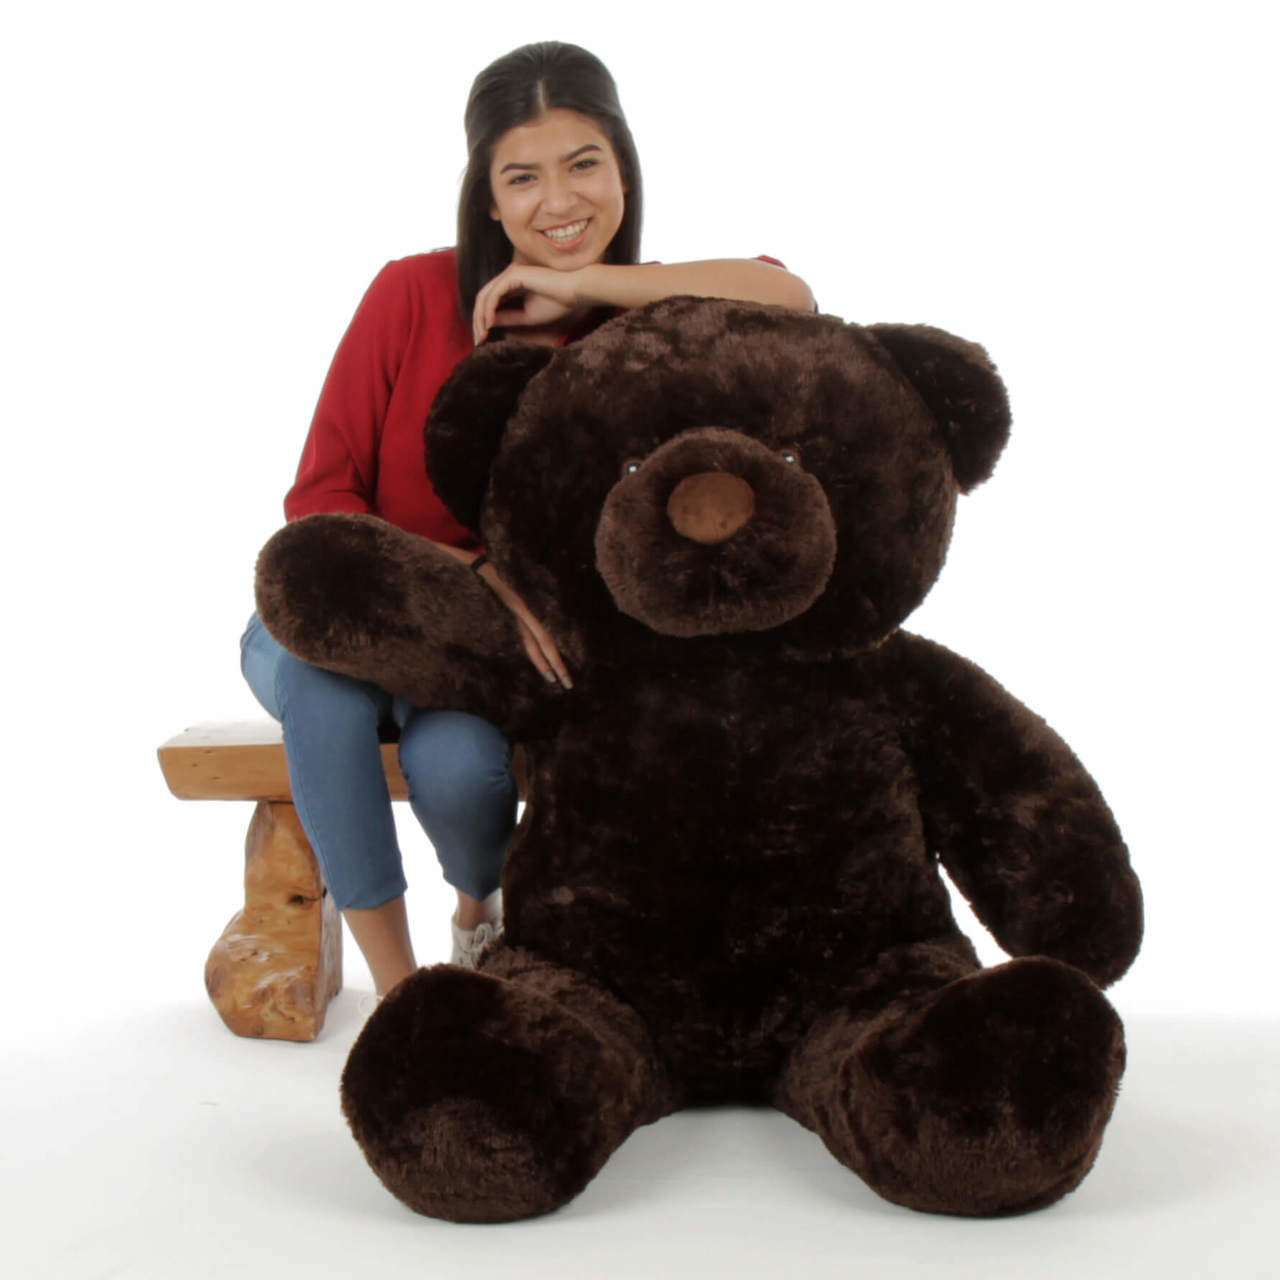 Giant 4ft Teddy Bear Munchkin Chubs dark brown snuggly soft